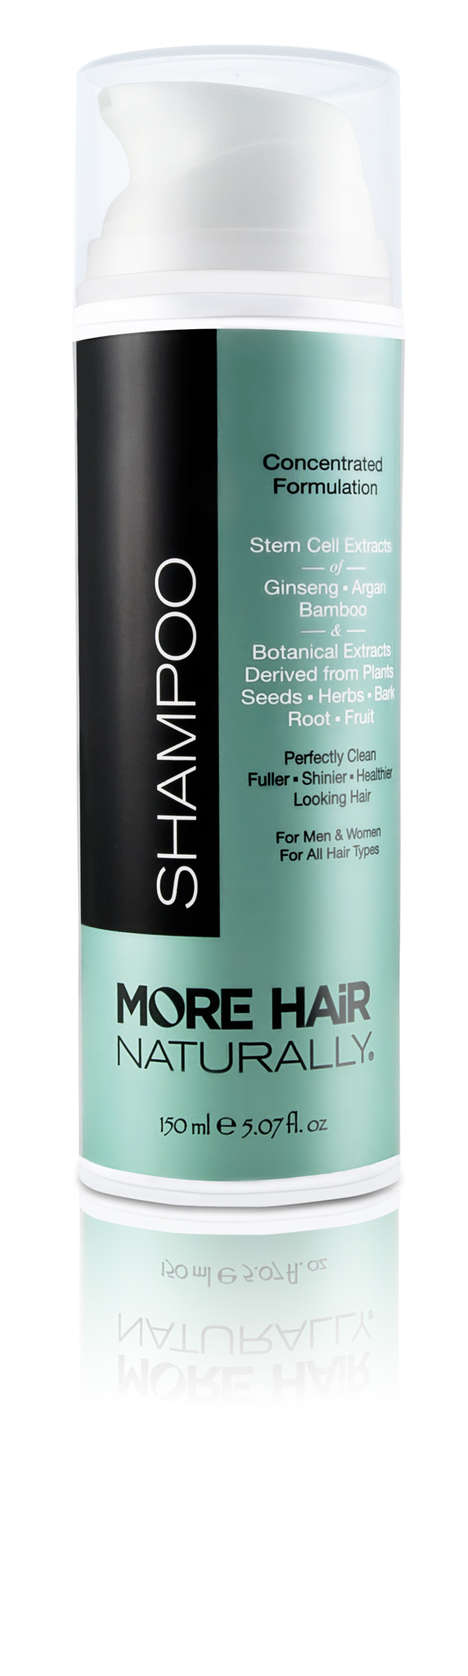 "Stem Cell Shampoos - More Hair Naturally is Introducing the ""World's Most Expensive Shampoo"""